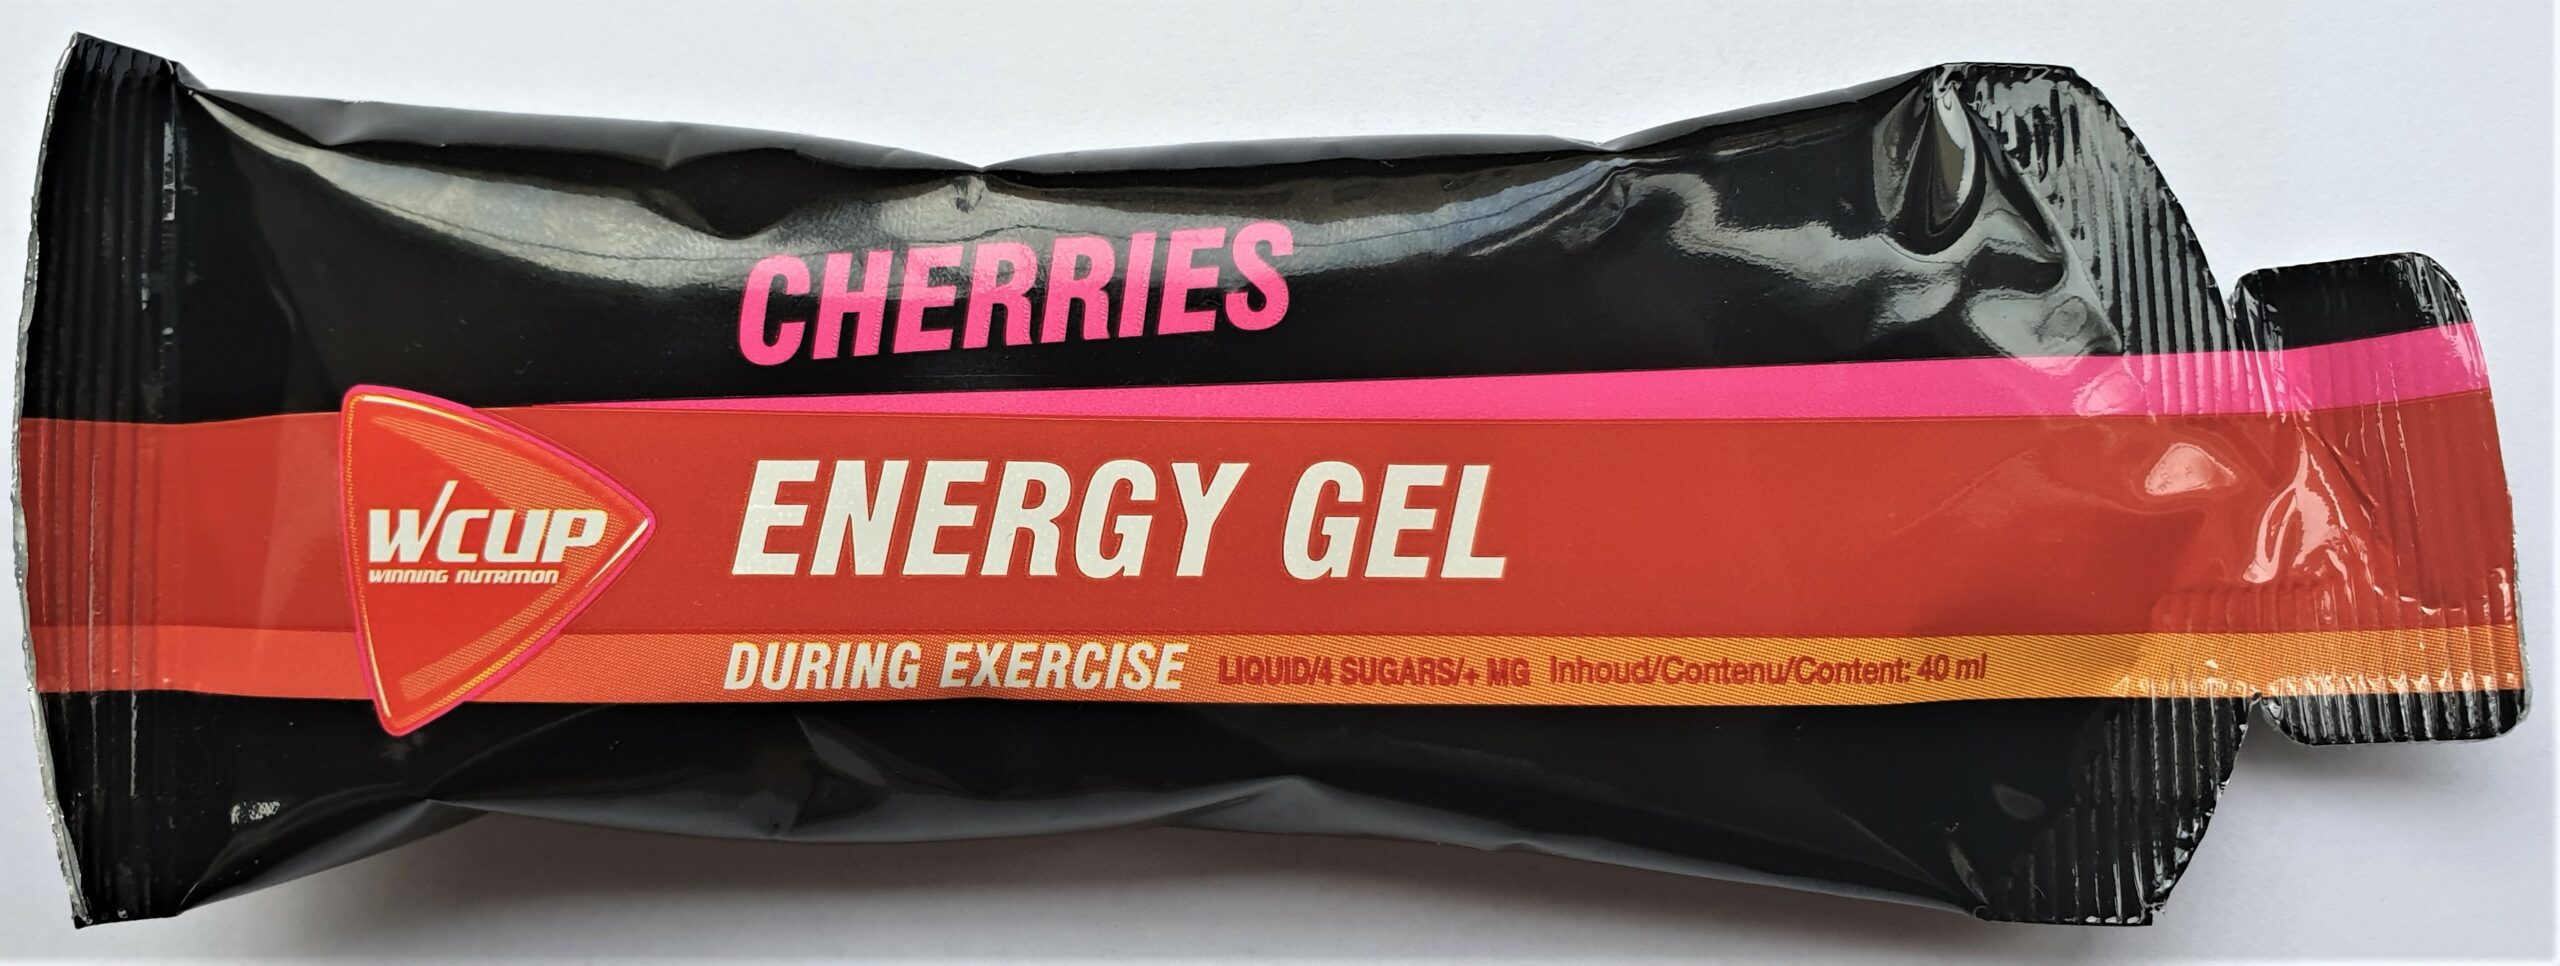 Energy Gel Cherries